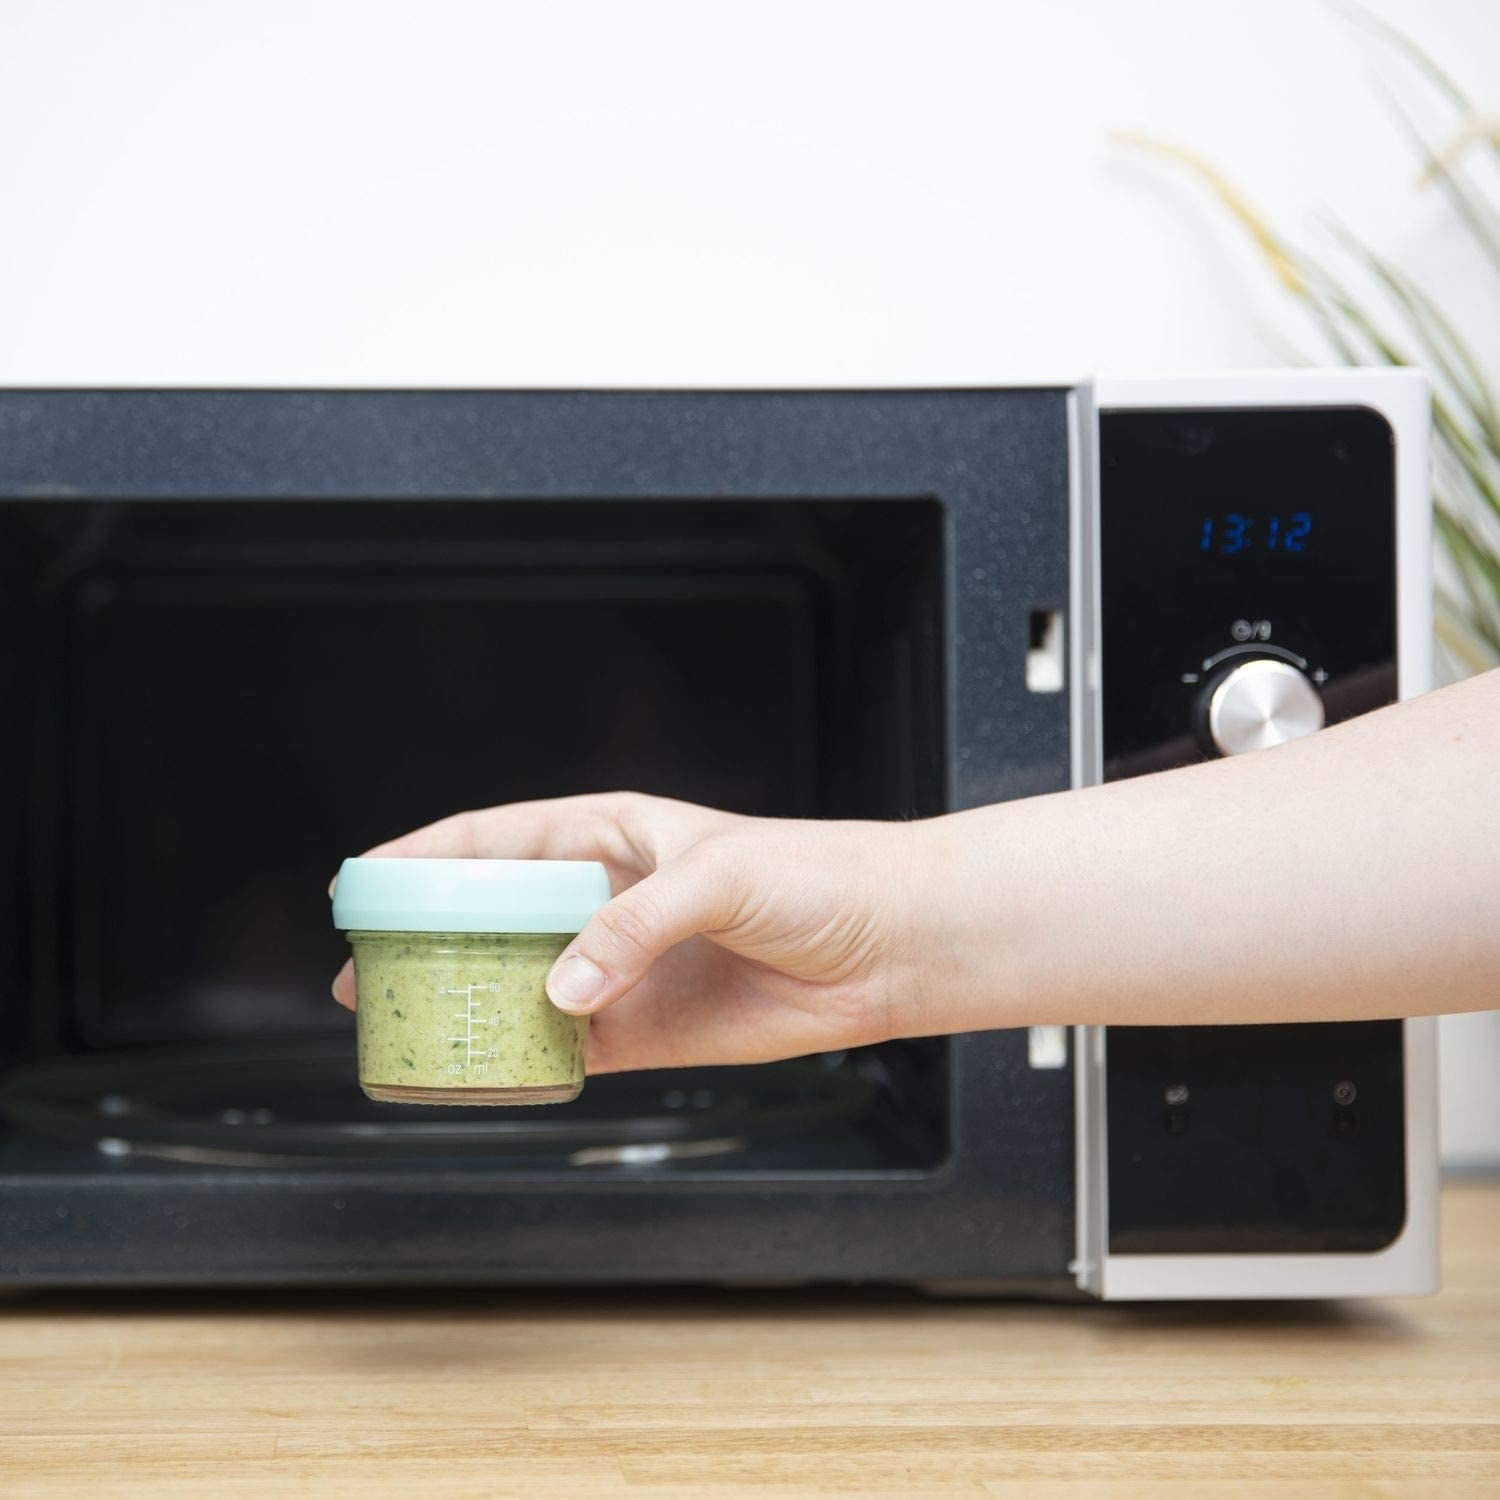 A person putting the container into a microwave